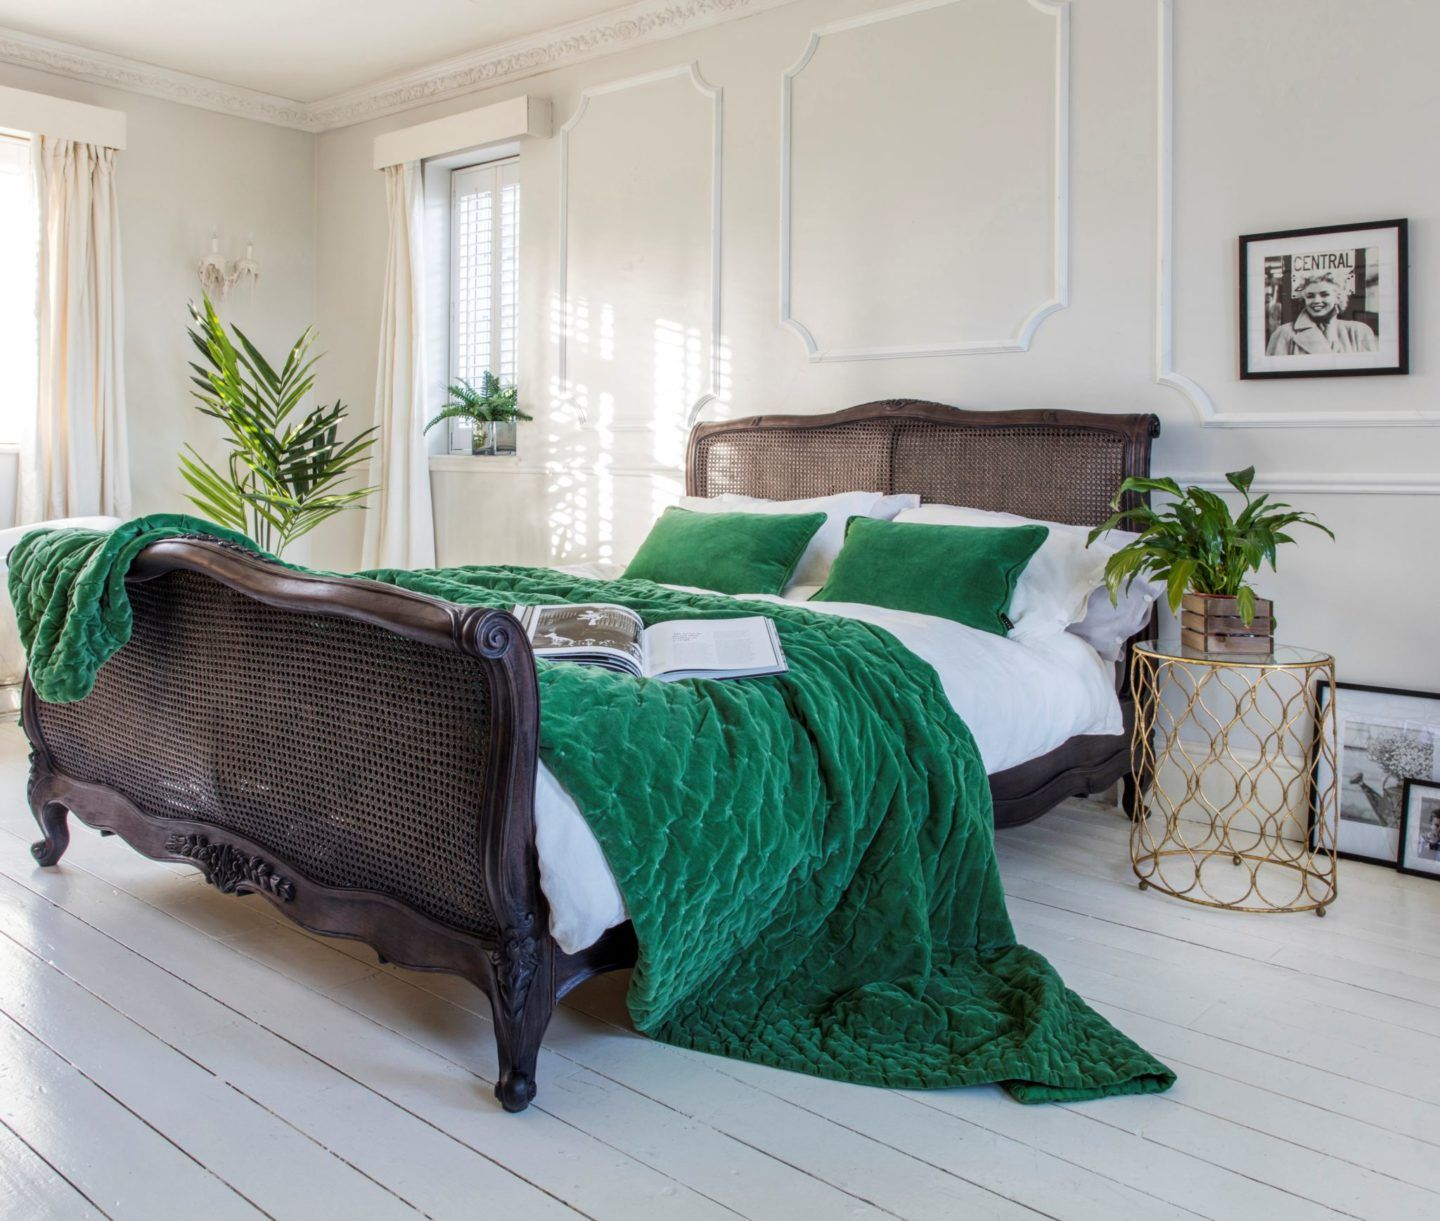 Master bedroom green  The French Bedroom Company Black Wood Wicker bed with green velvet